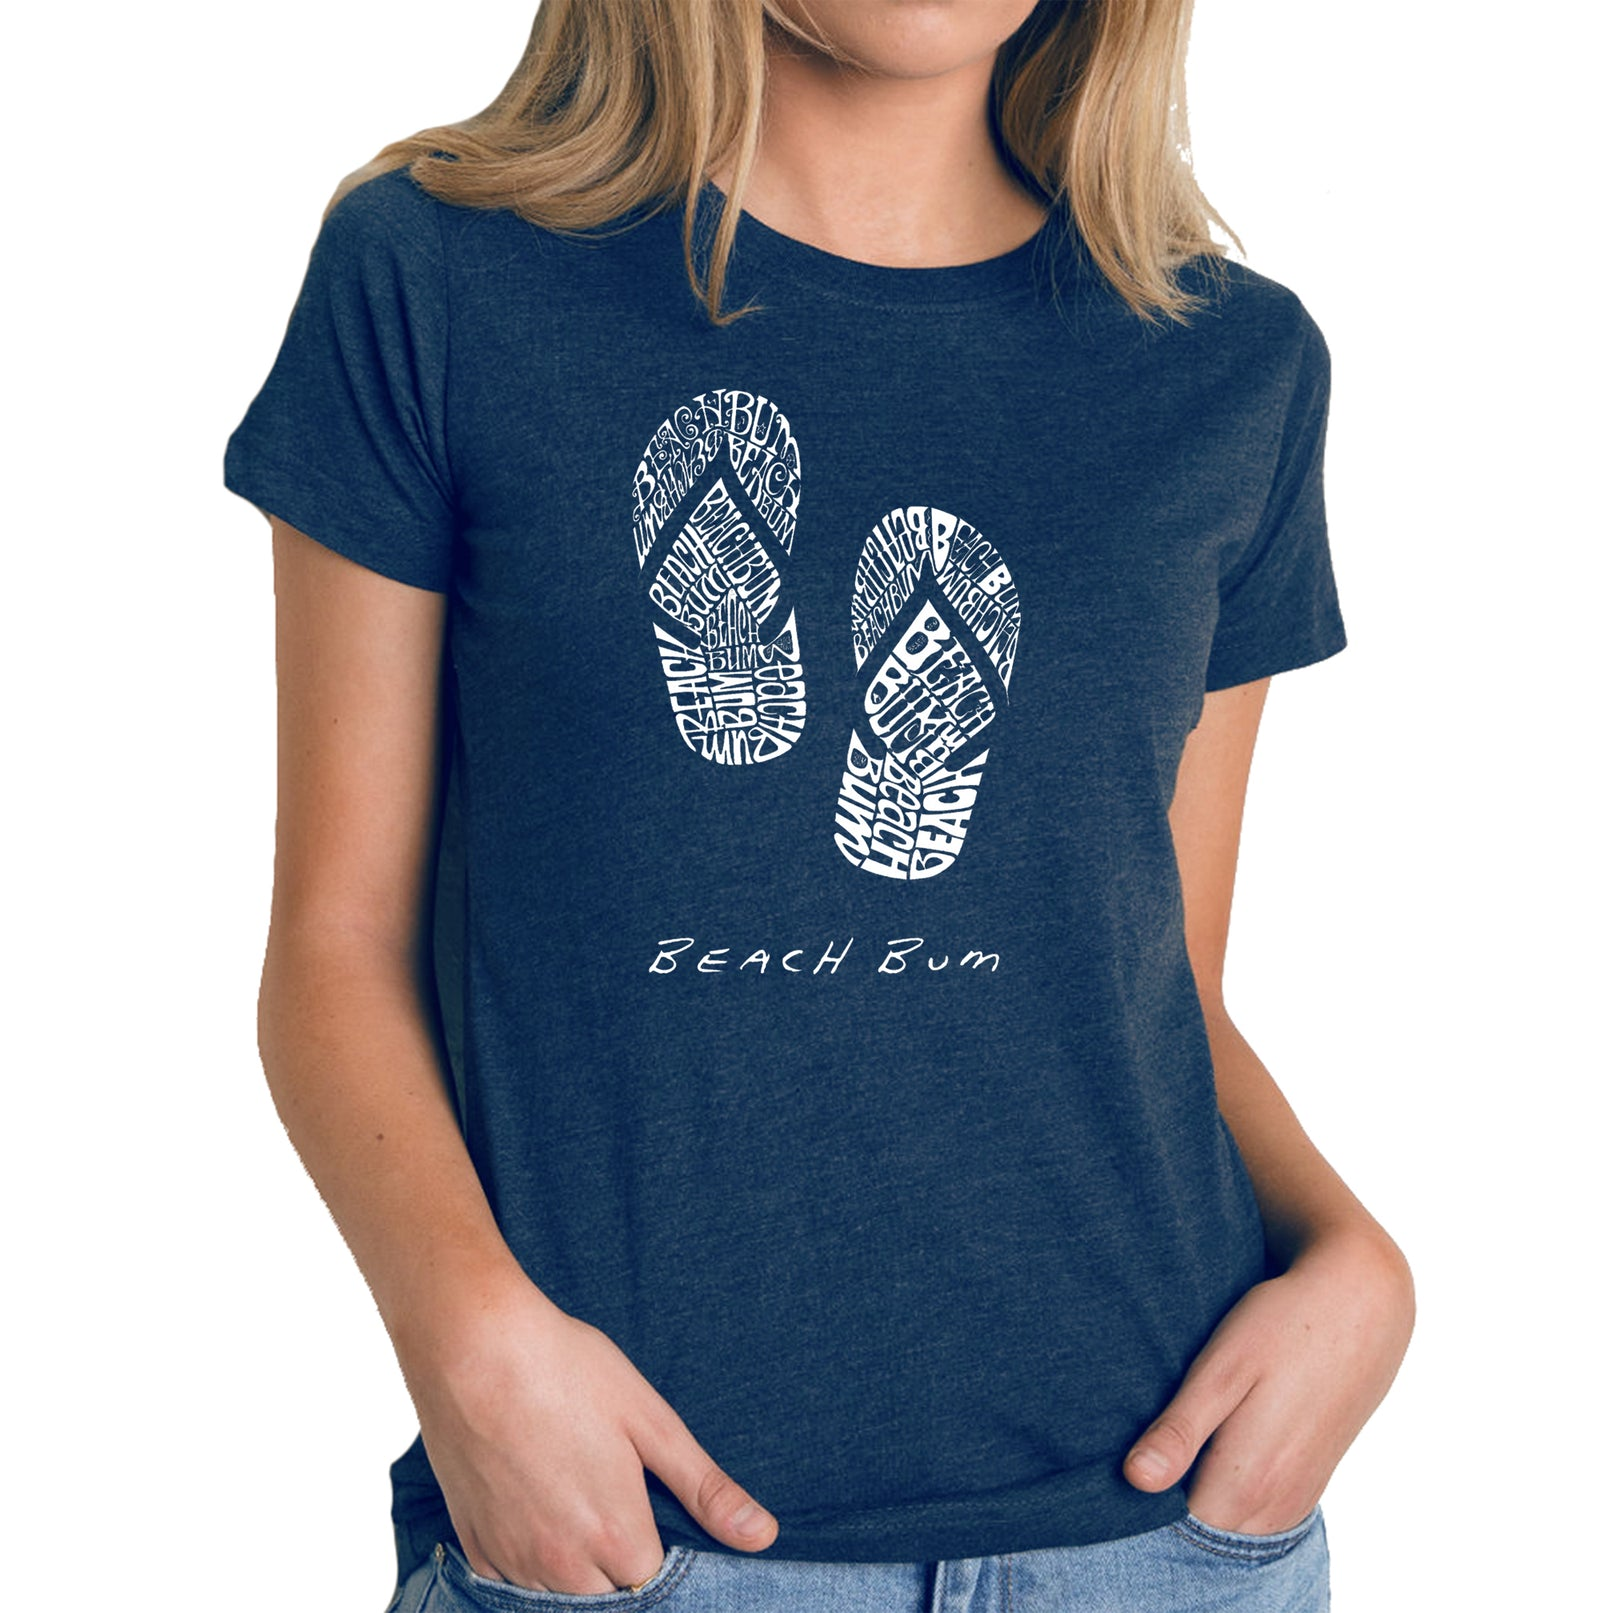 Women's Premium Blend Word Art T-shirt - BEACH BUM